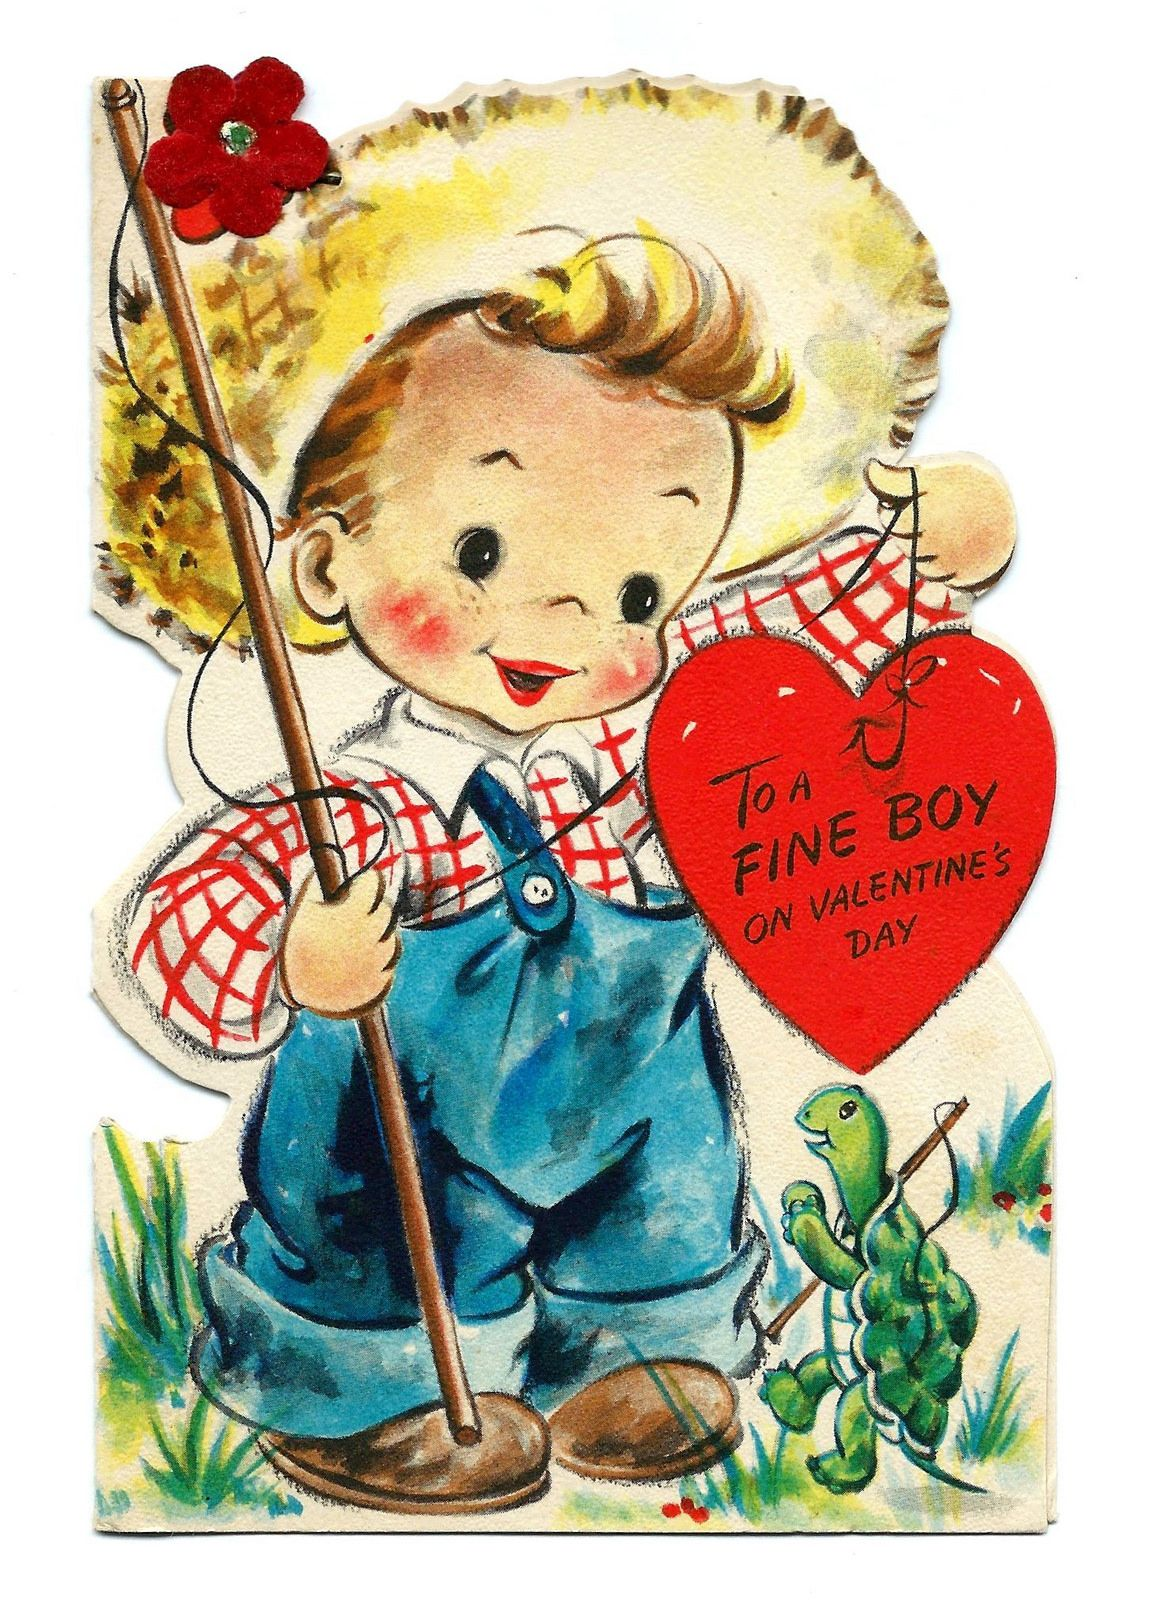 Vintage valentine card to a fine boy on valentines day tommy and vintage valentines day greeting card for a boy fishing pole turtle straw hat kristyandbryce Choice Image